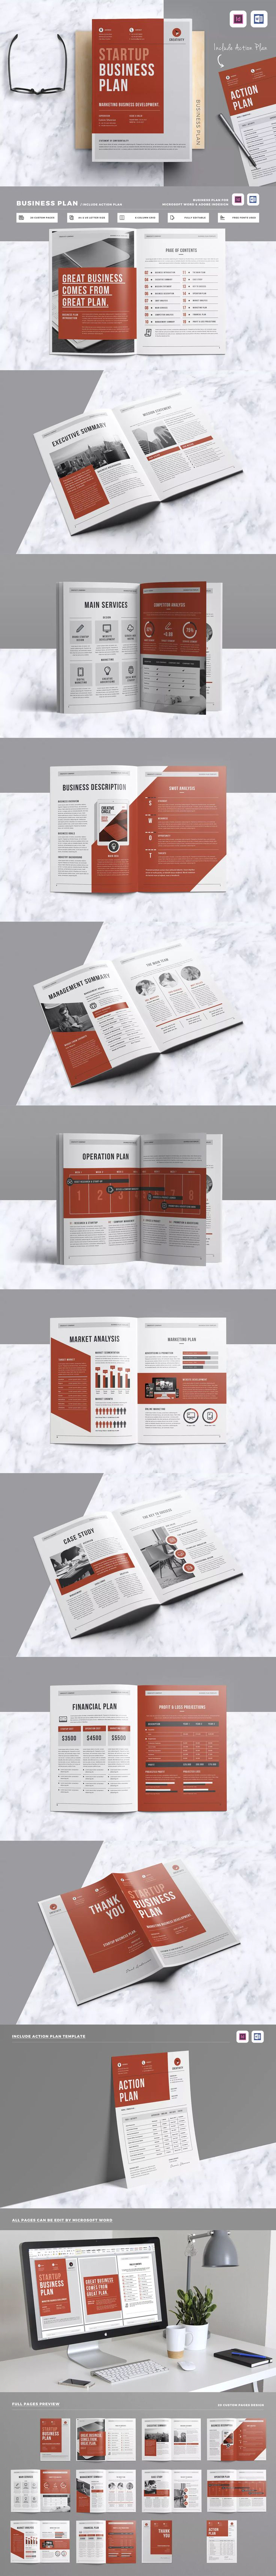 Business Plan Brochure Template InDesign INDD - A4 & US Letter Size